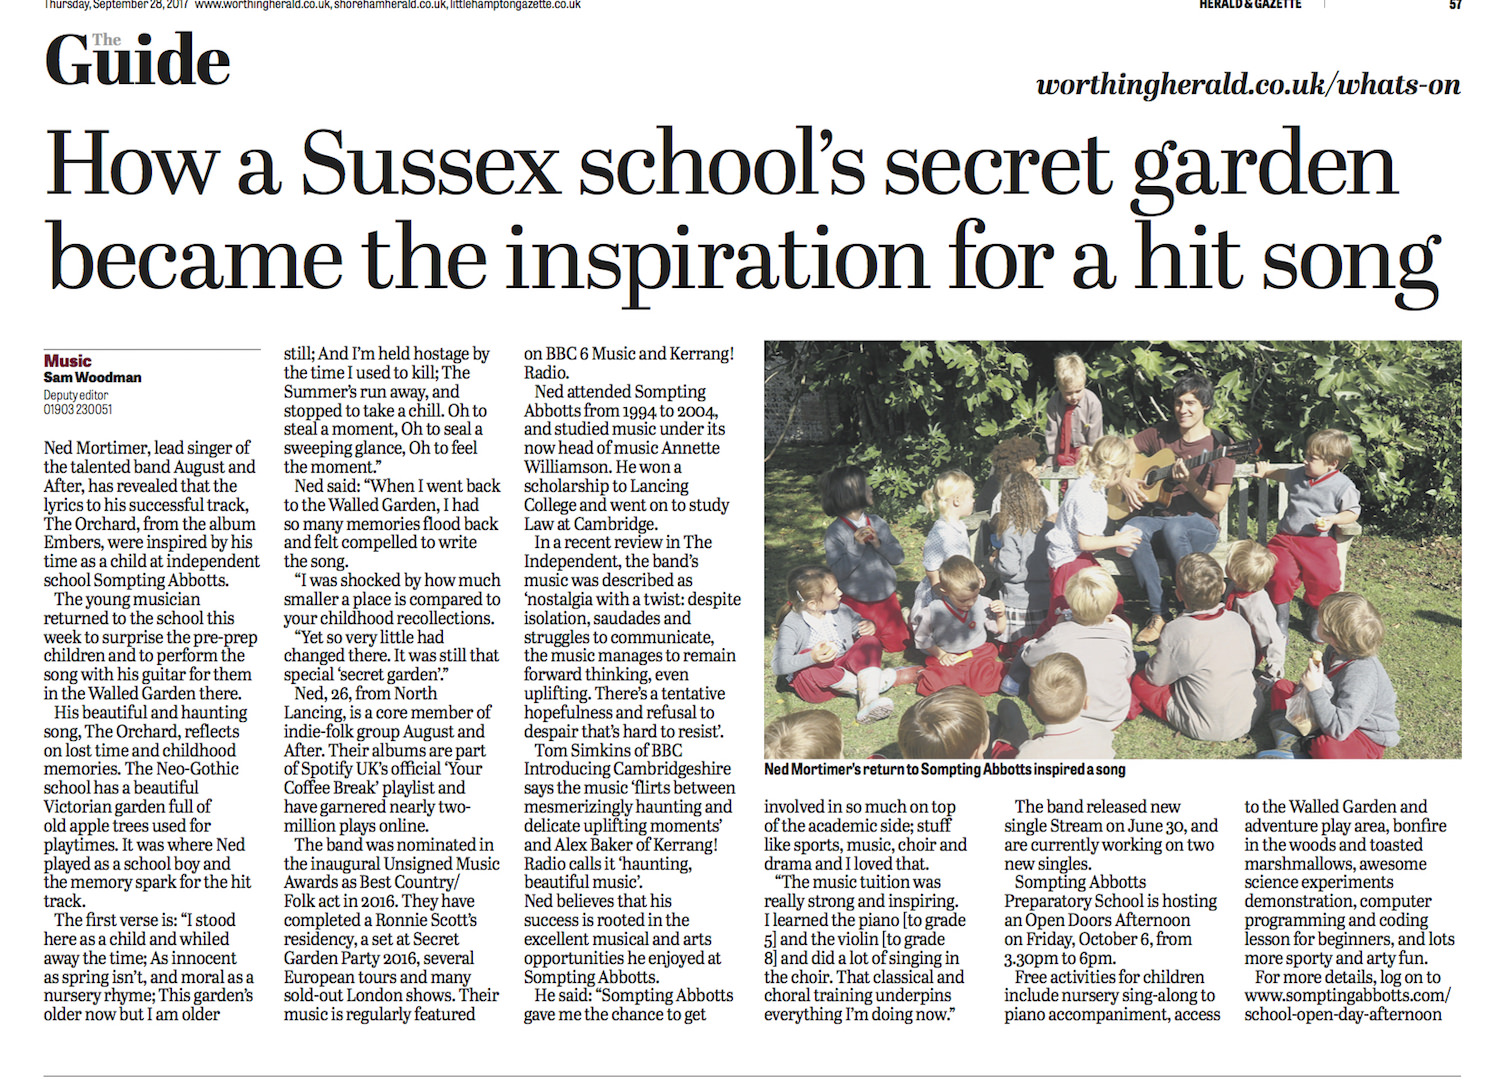 Click on image or link to see the story reported in the  Worthing Herald here